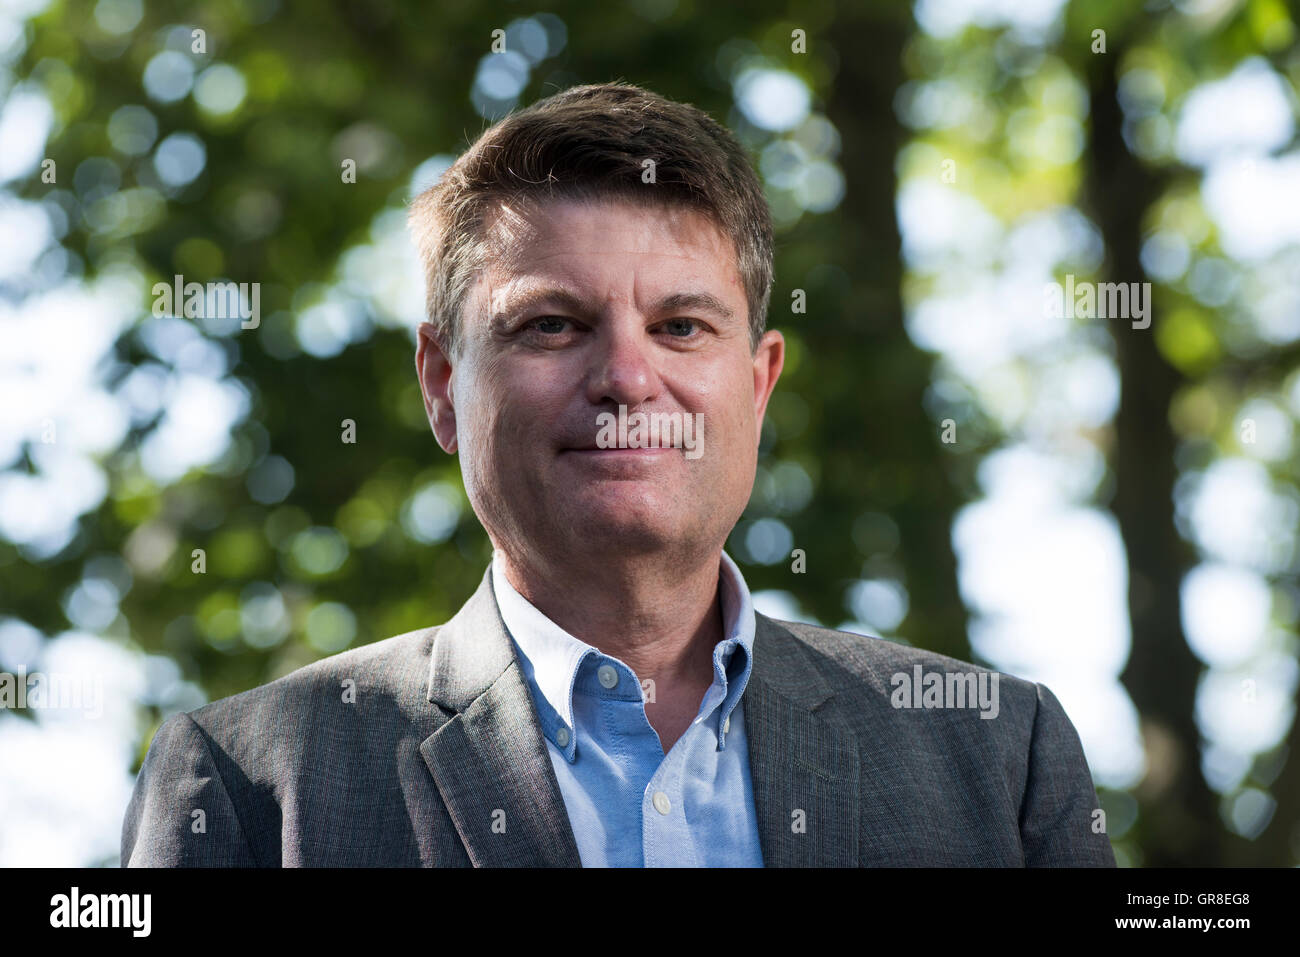 dd5b5a7096284 American Futurist and author Martin Ford Stock Photo  117586344 - Alamy